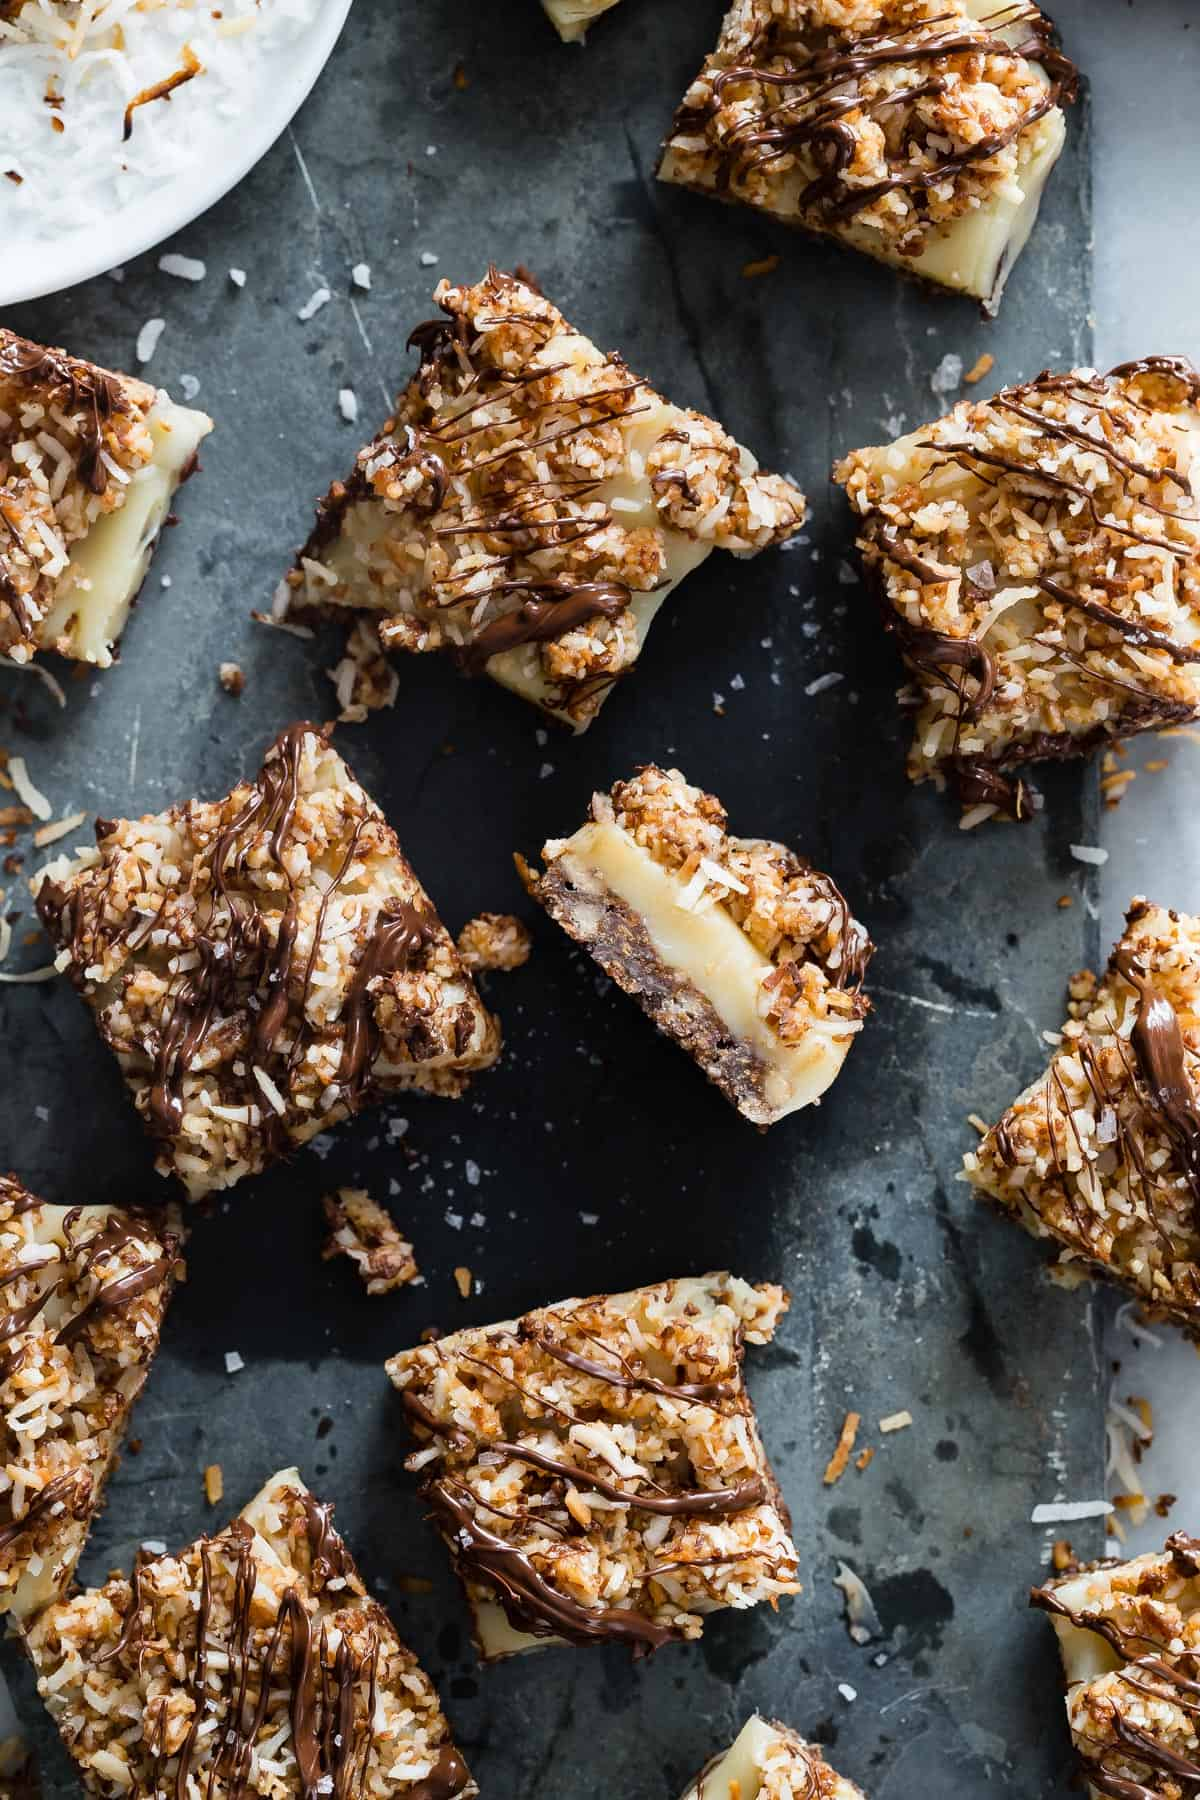 I turned these famous Girl Scout Samoa Cookies into delicious caramel millionaire bars. They taste just like the cookies only better if you can believe that!